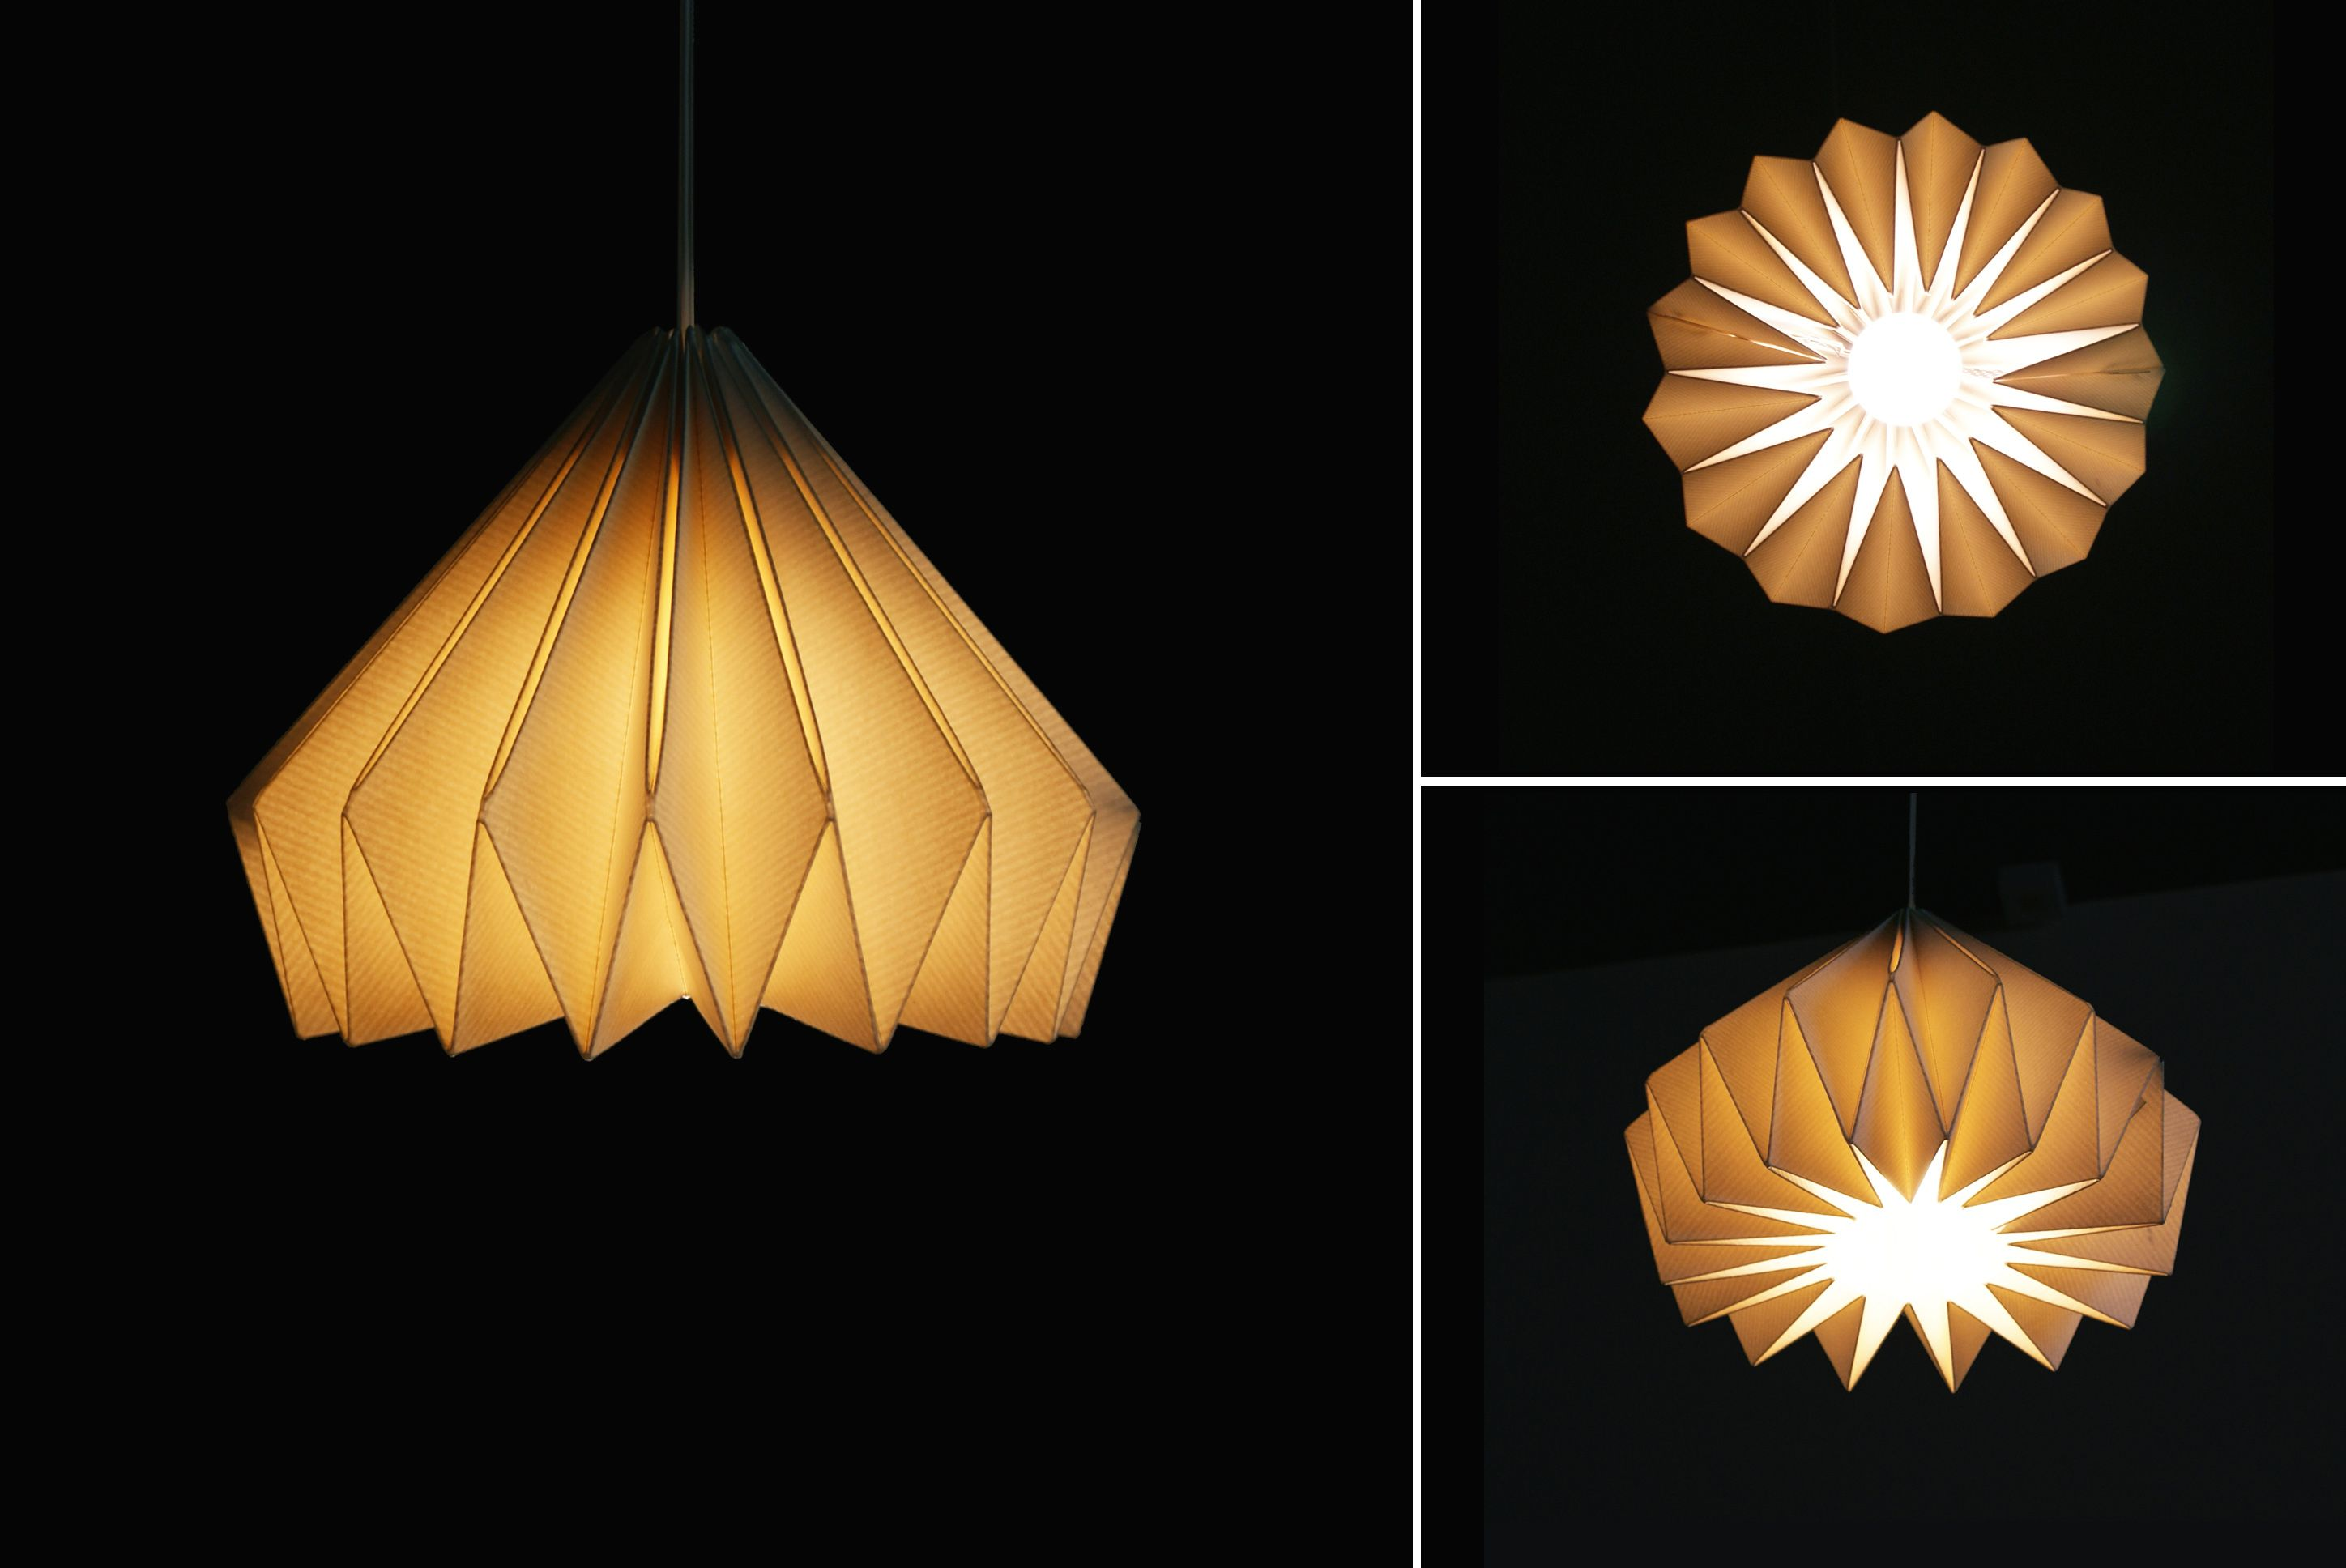 Brownfolds pearl gold paper origami lamp shade vanilla bliss dual brownfolds pearl gold paper origami lamp shade vanilla bliss dual pack by brownfolds price rs 999 aloadofball Image collections